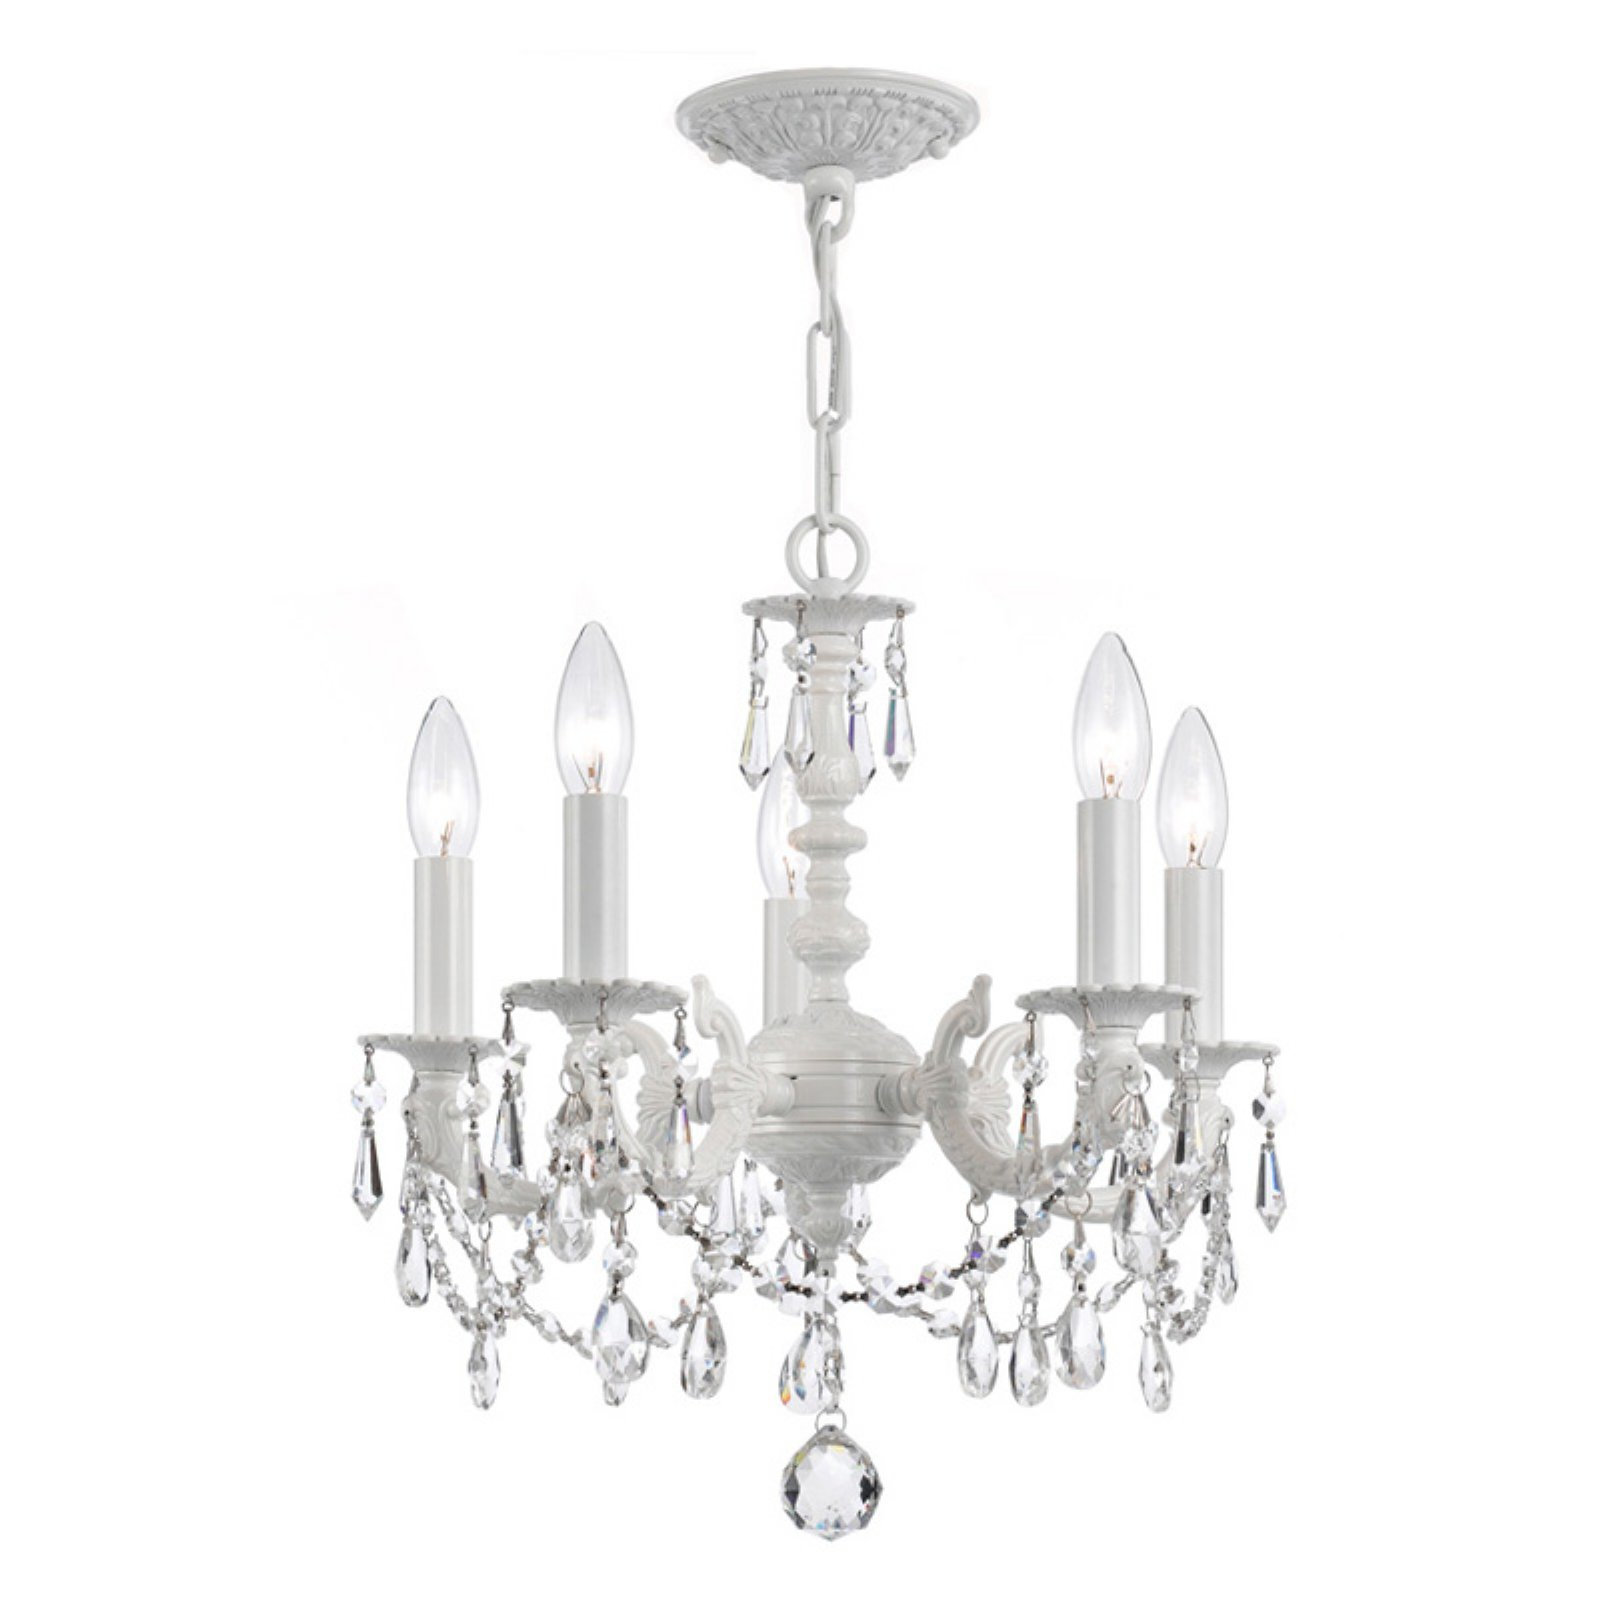 Popular Blanchette 5 Light Candle Style Chandeliers Pertaining To Crystorama Paris Market 5515 Ww Cl Mwp 5 Light Chandelier (Gallery 14 of 20)